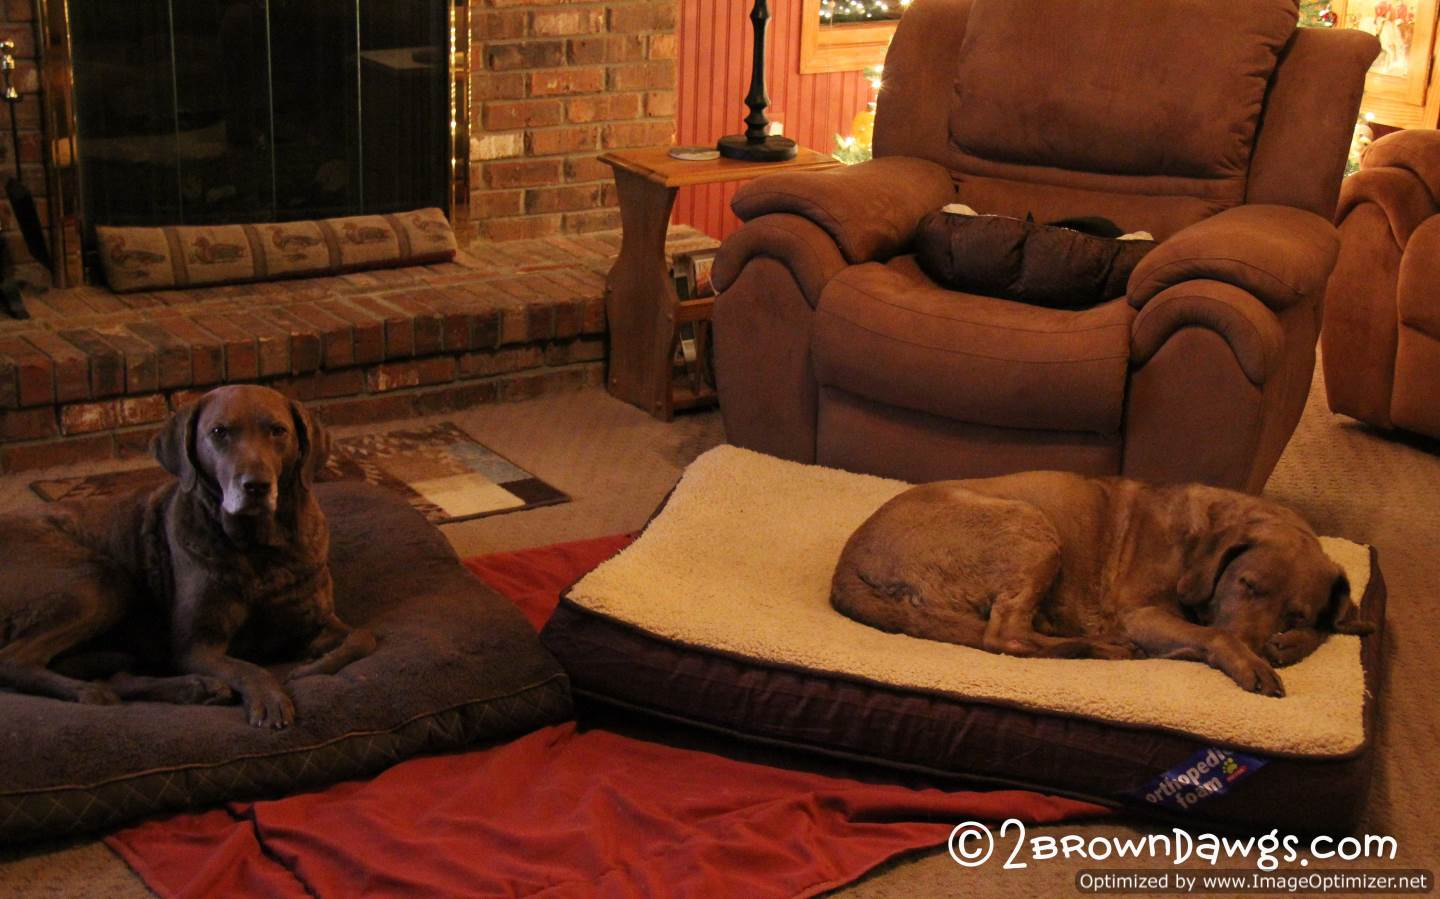 Three Snoozing Animals...Two Brown Dawgs And A Cat